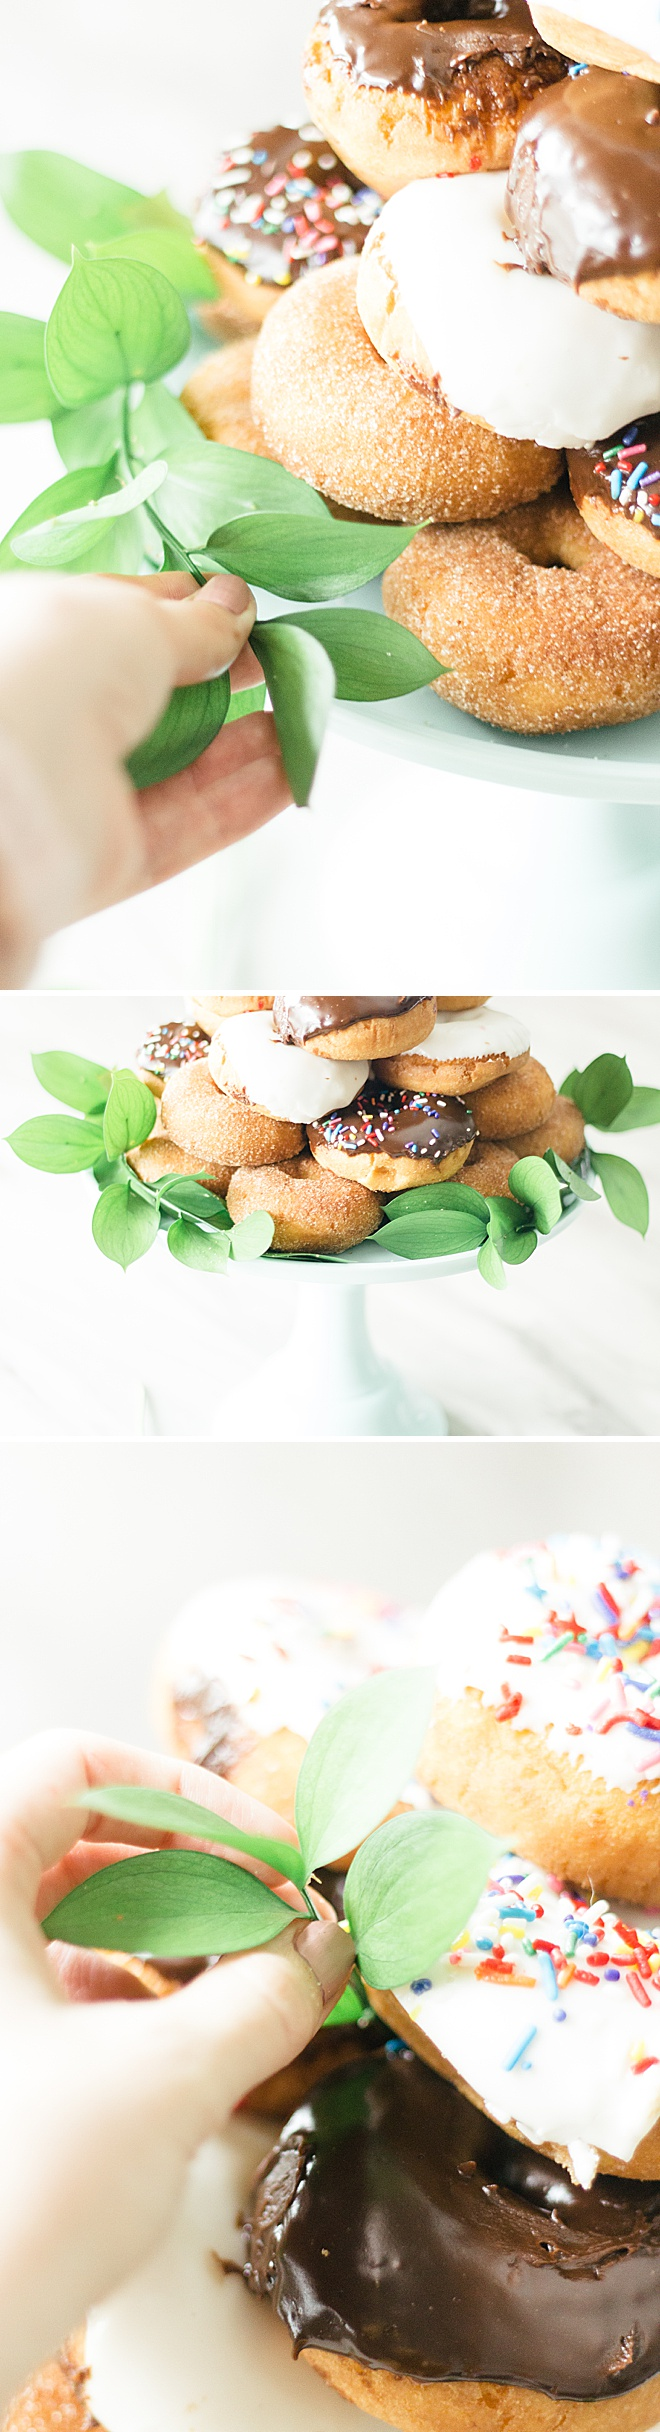 Learn how to make this simple and delicious DIY donut wedding cake!